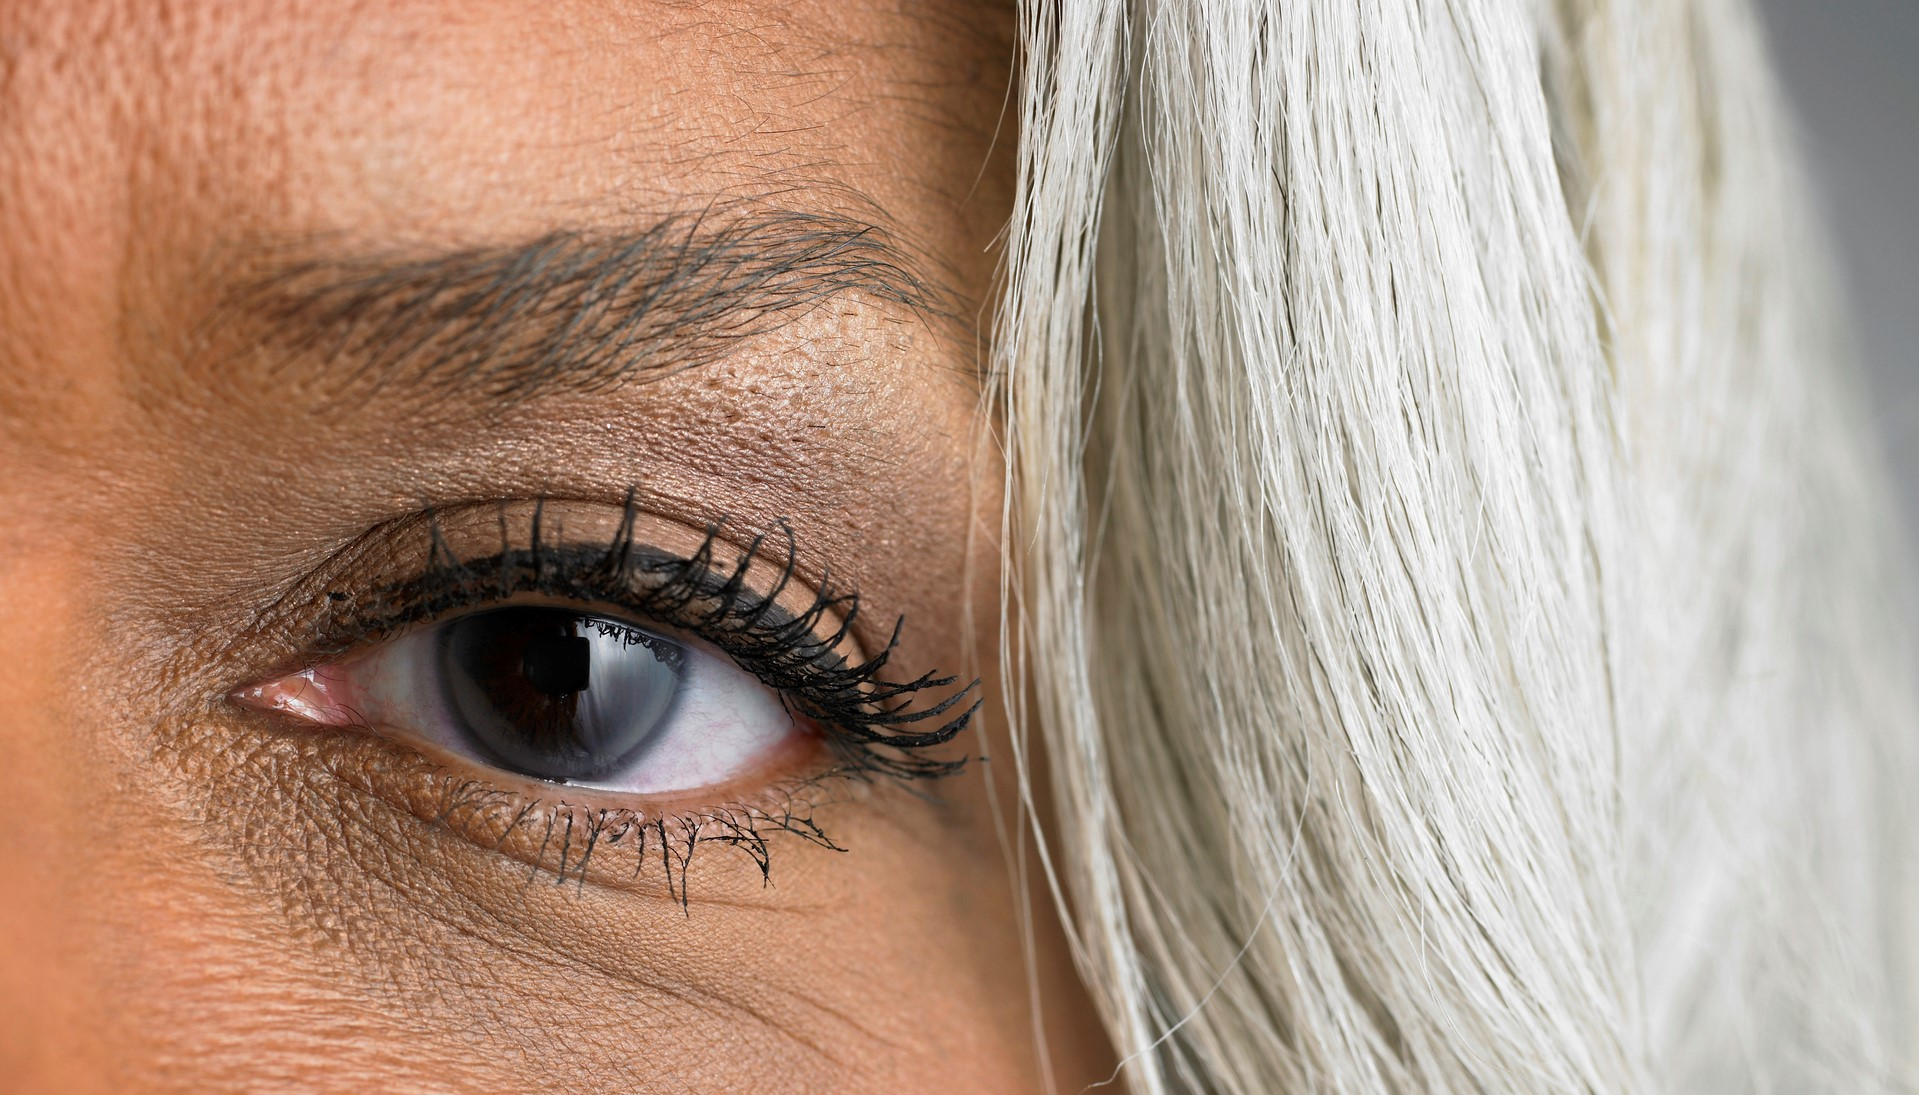 Glaucoma, Know the signs of glaucoma, Eye Health, Eye care, Take care of your eyes-1